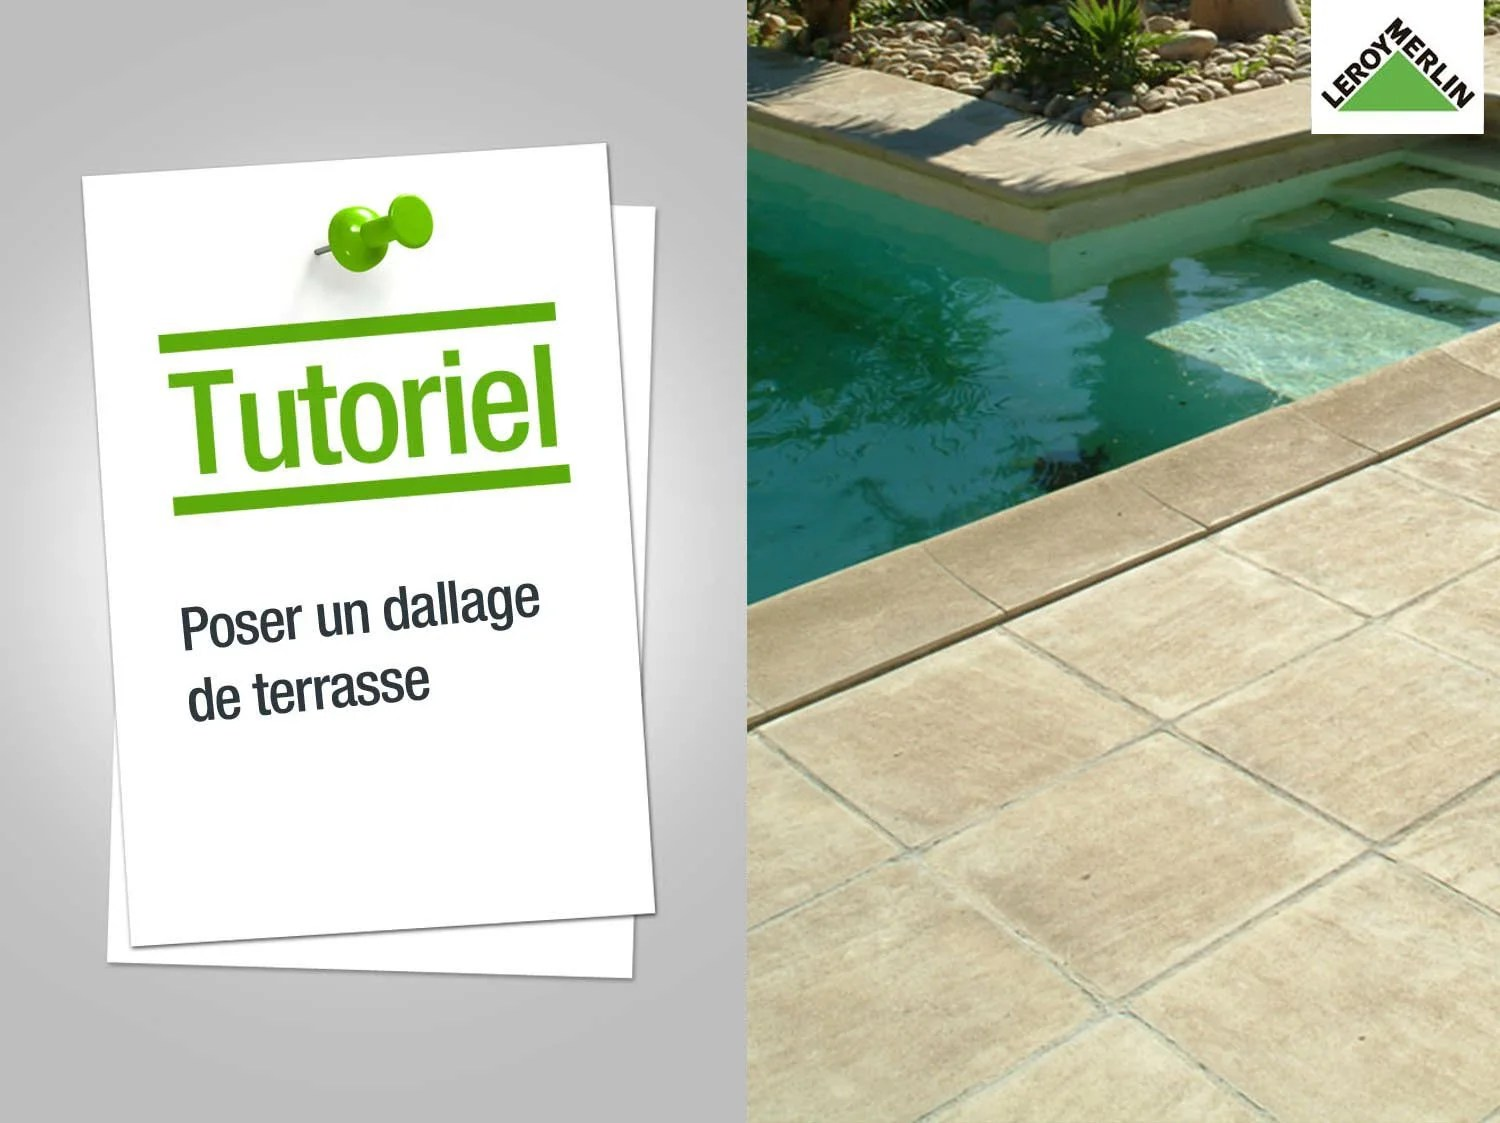 Pose Carrelage Exterieur Video Comment Poser Un Dallage De Terrasse Leroy Merlin